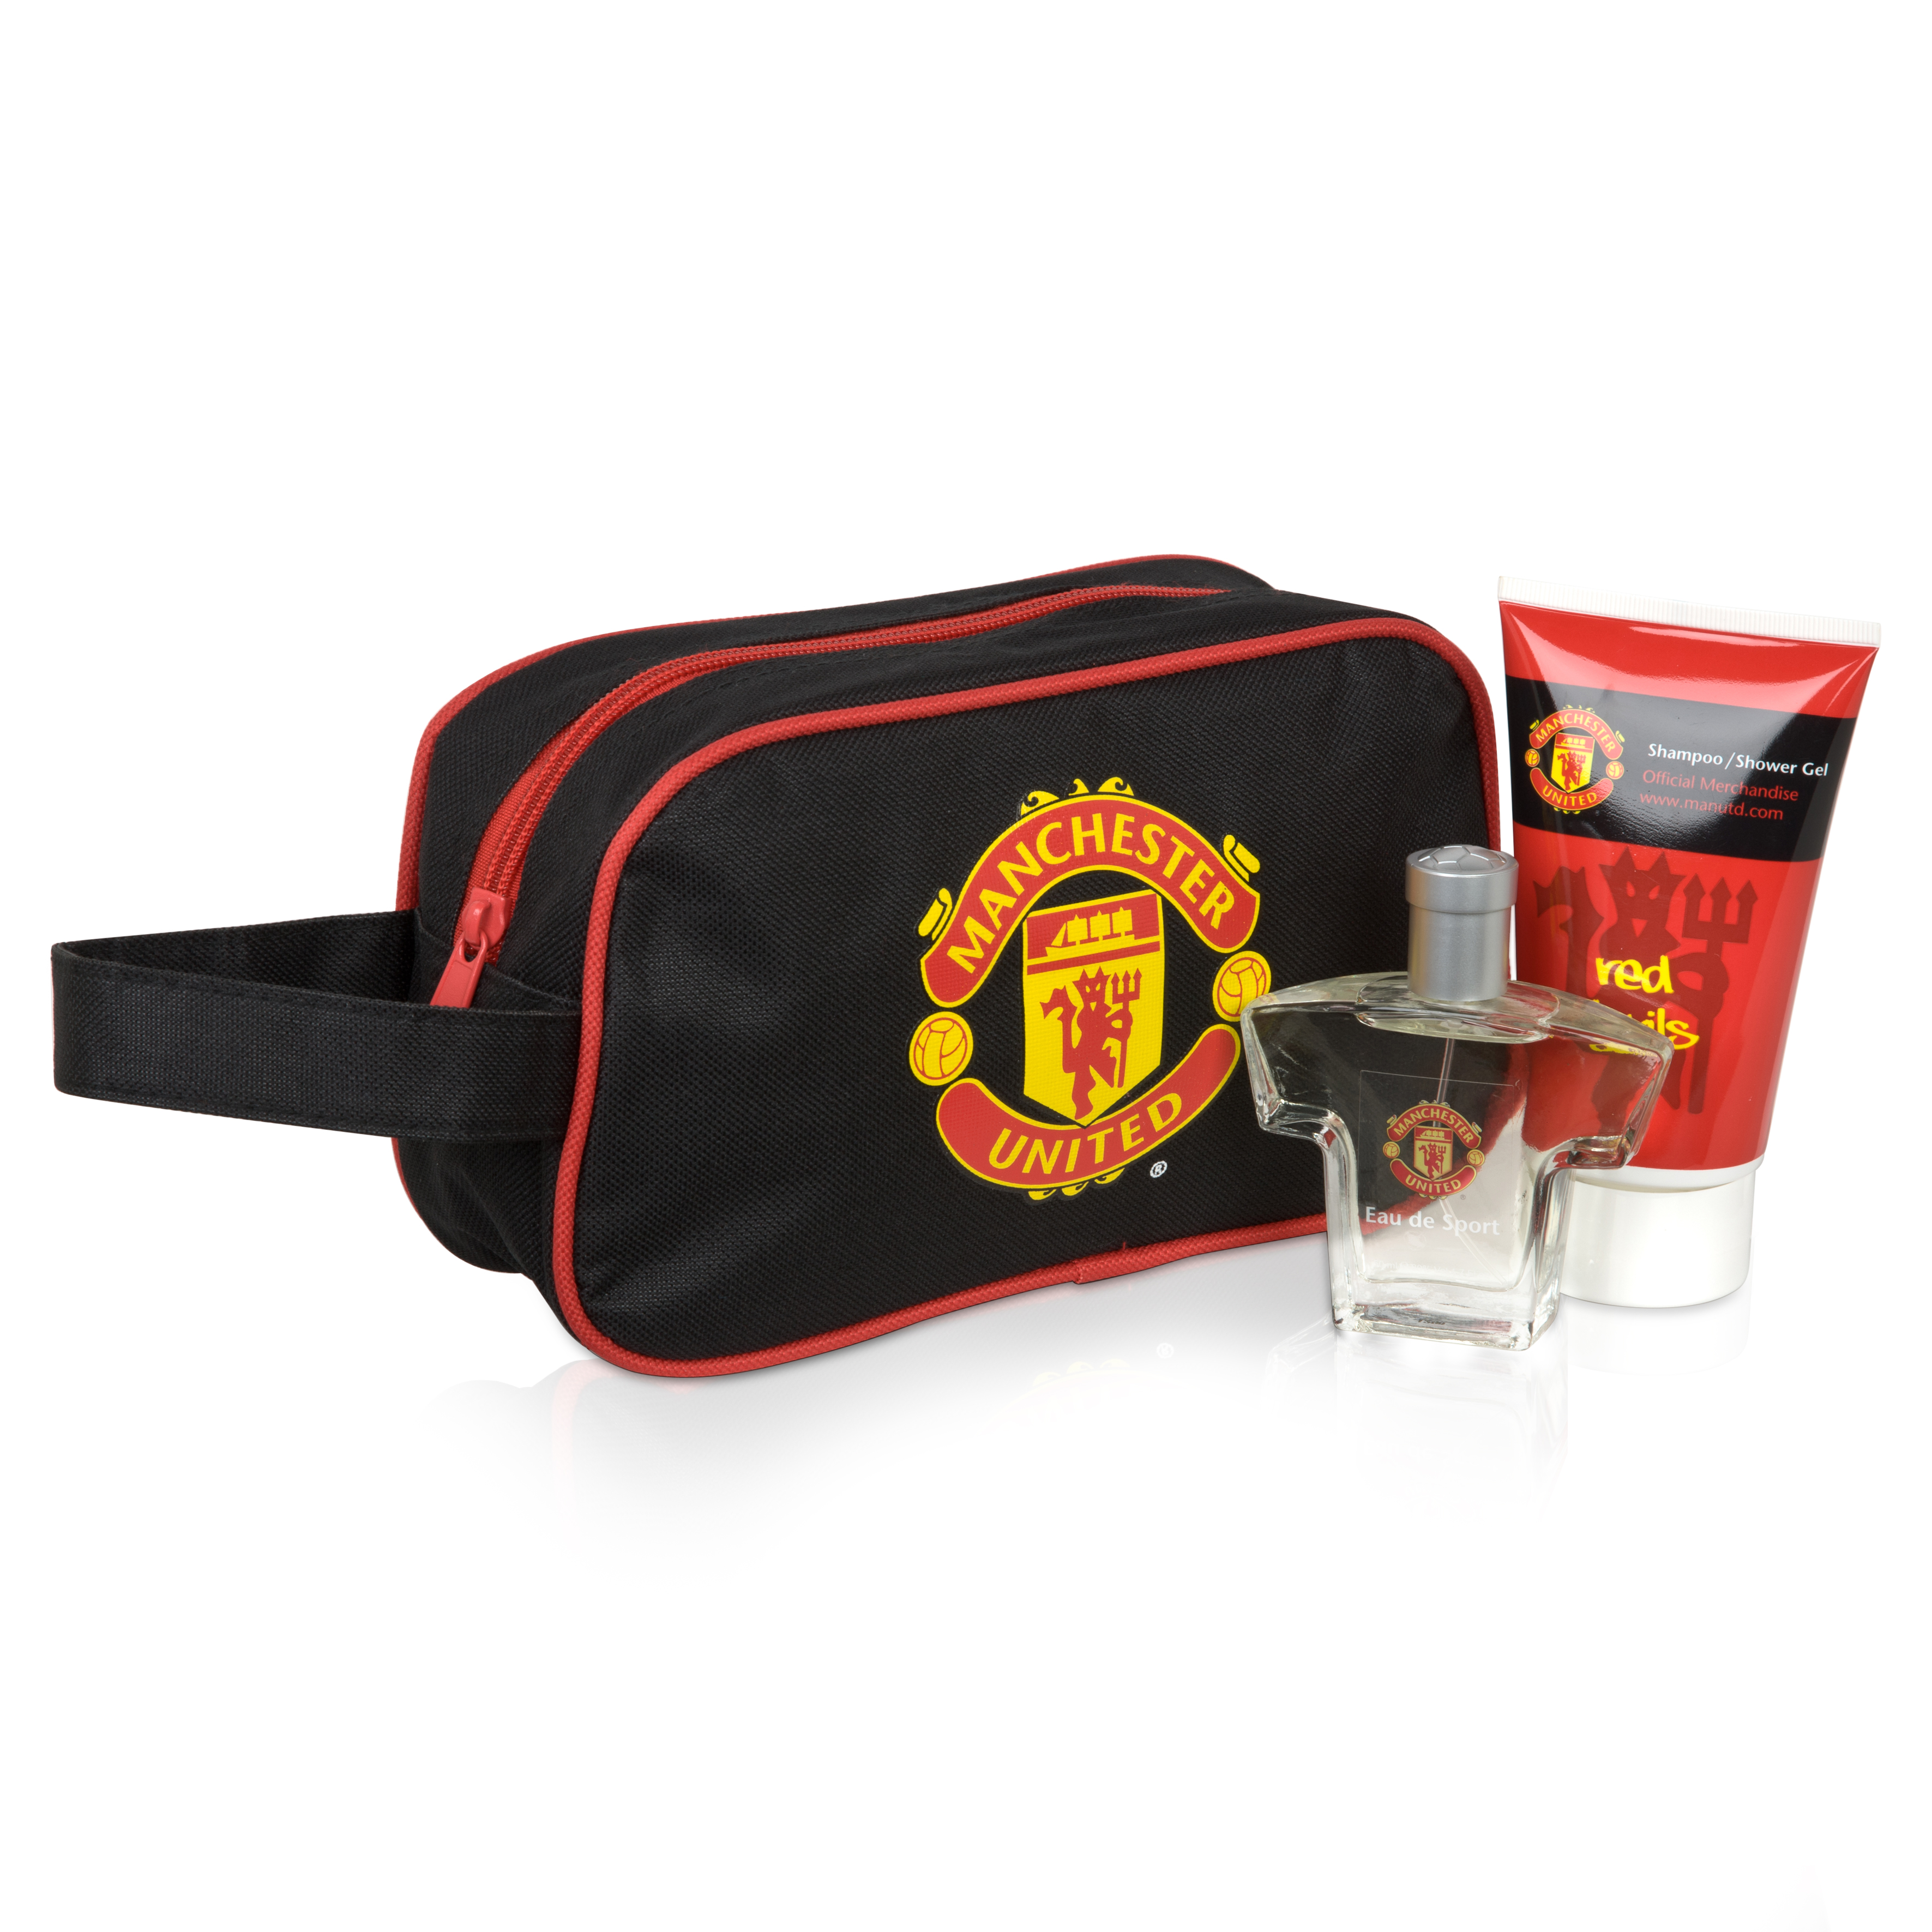 Manchester United Wash Bag-Eau De Sport-Shampoo-Shower Gel Set